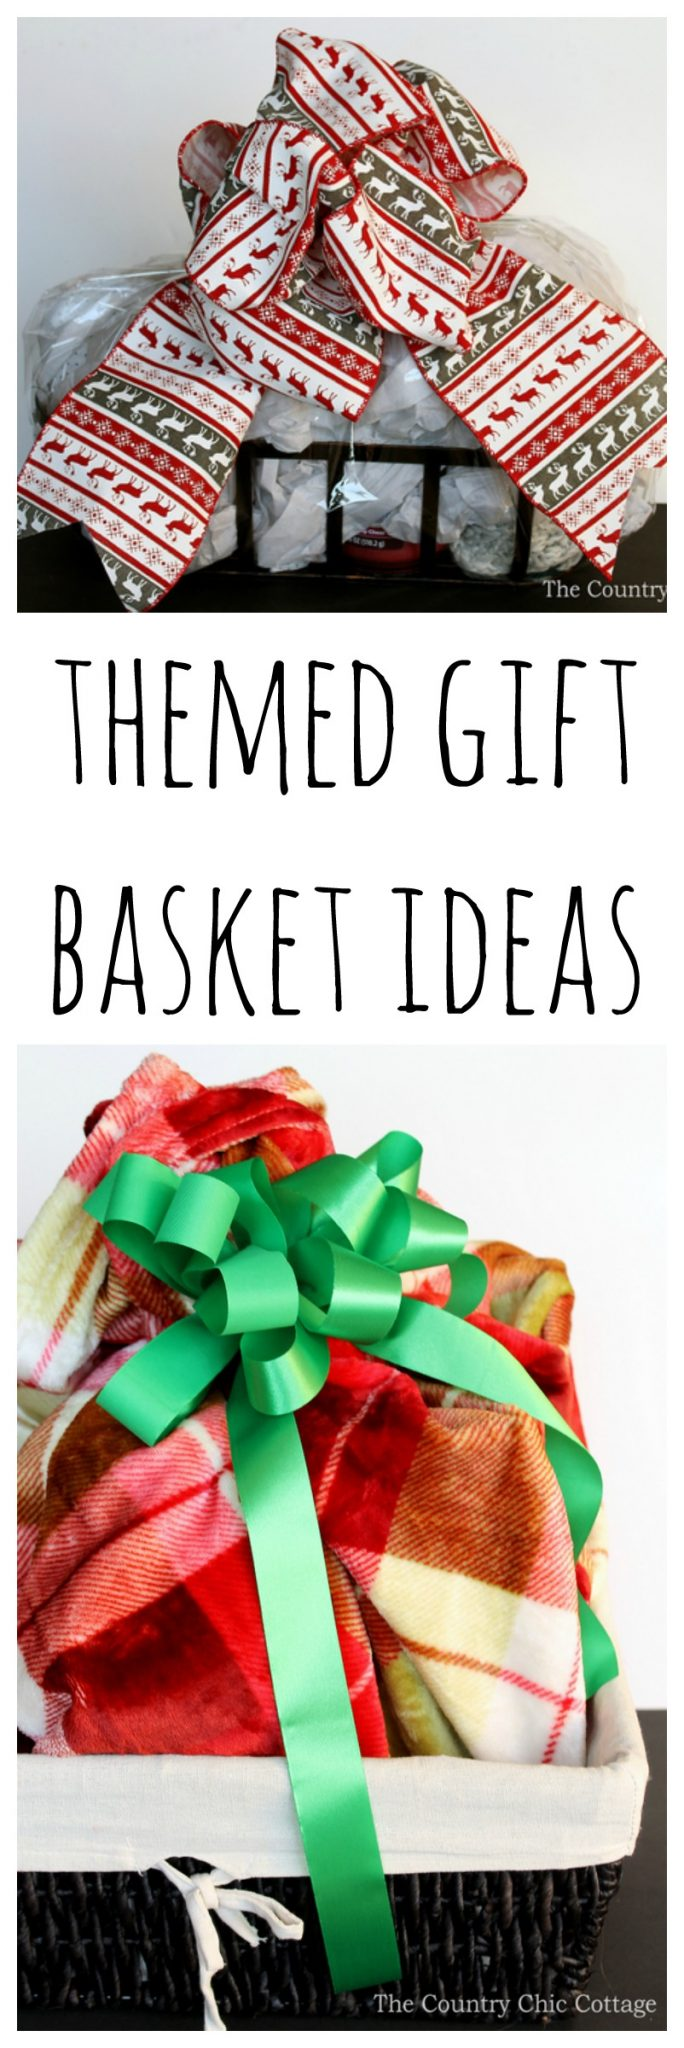 Our themed gift basket ideas are perfect for Christmas! Give everyone a gift basket this holiday season! I love the idea of using a blanket as a wrap for the gift basket!